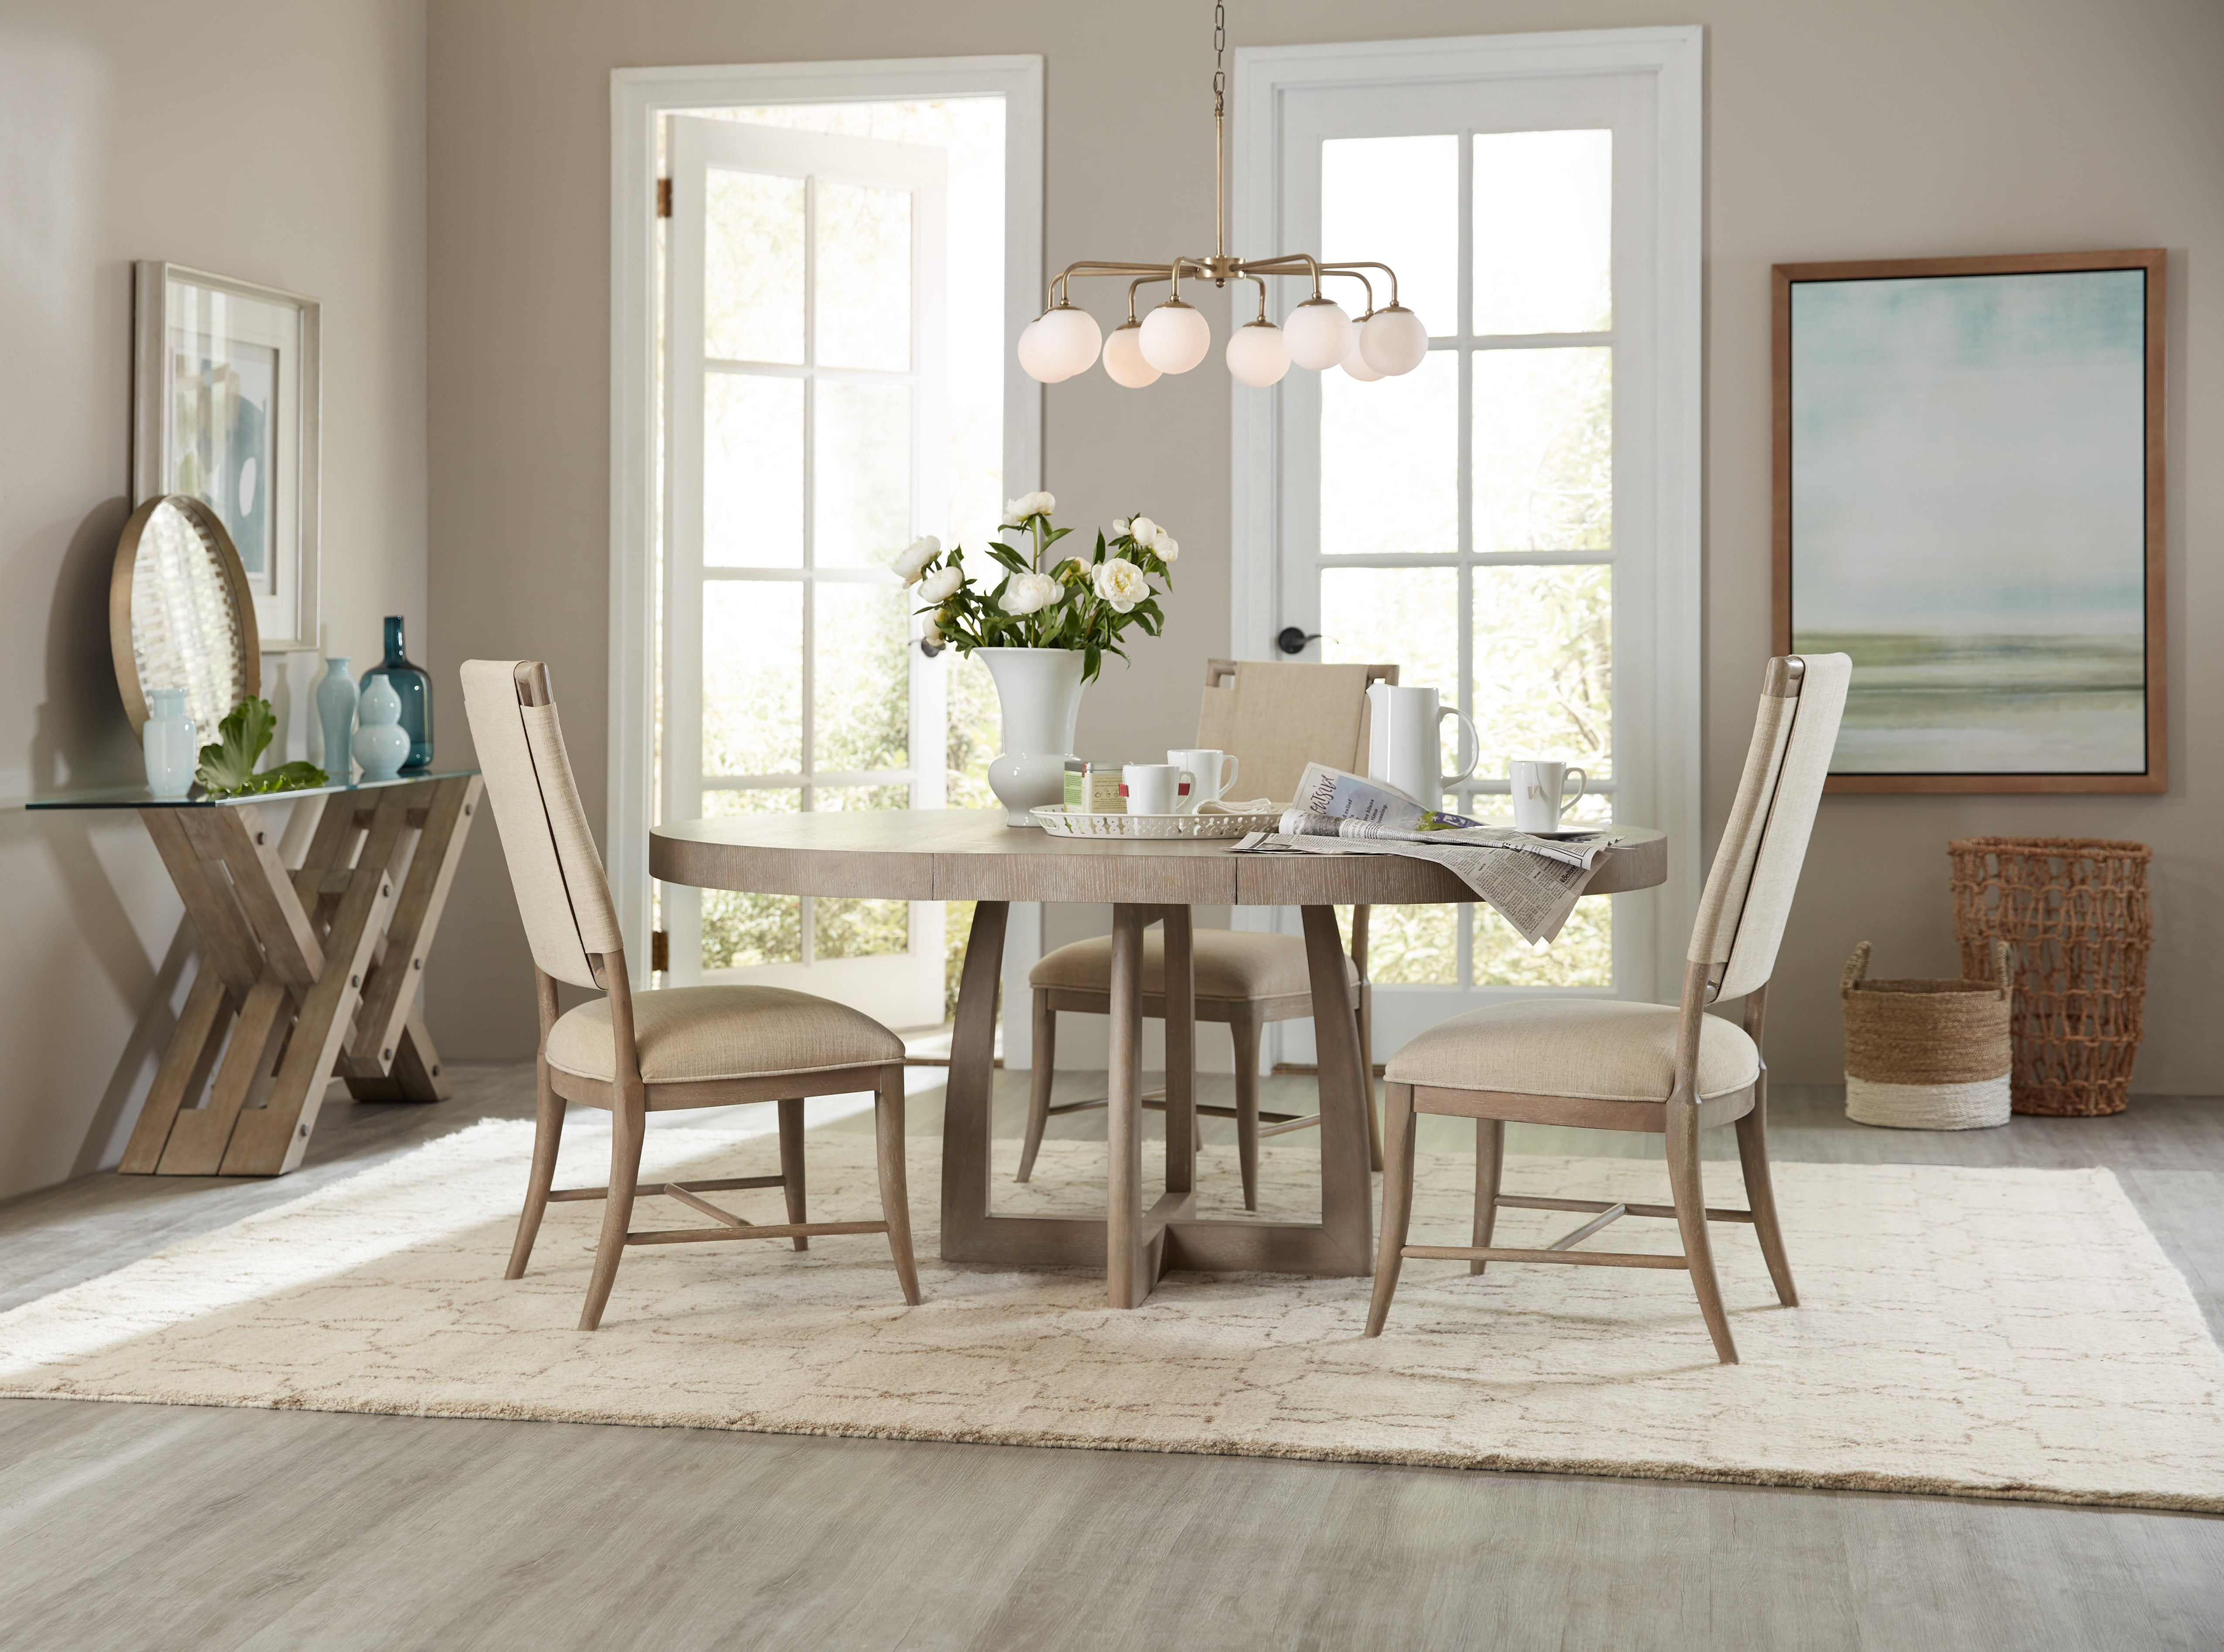 Affinity 48in Round Pedestal Dining Table W1 18in Leaf Brown